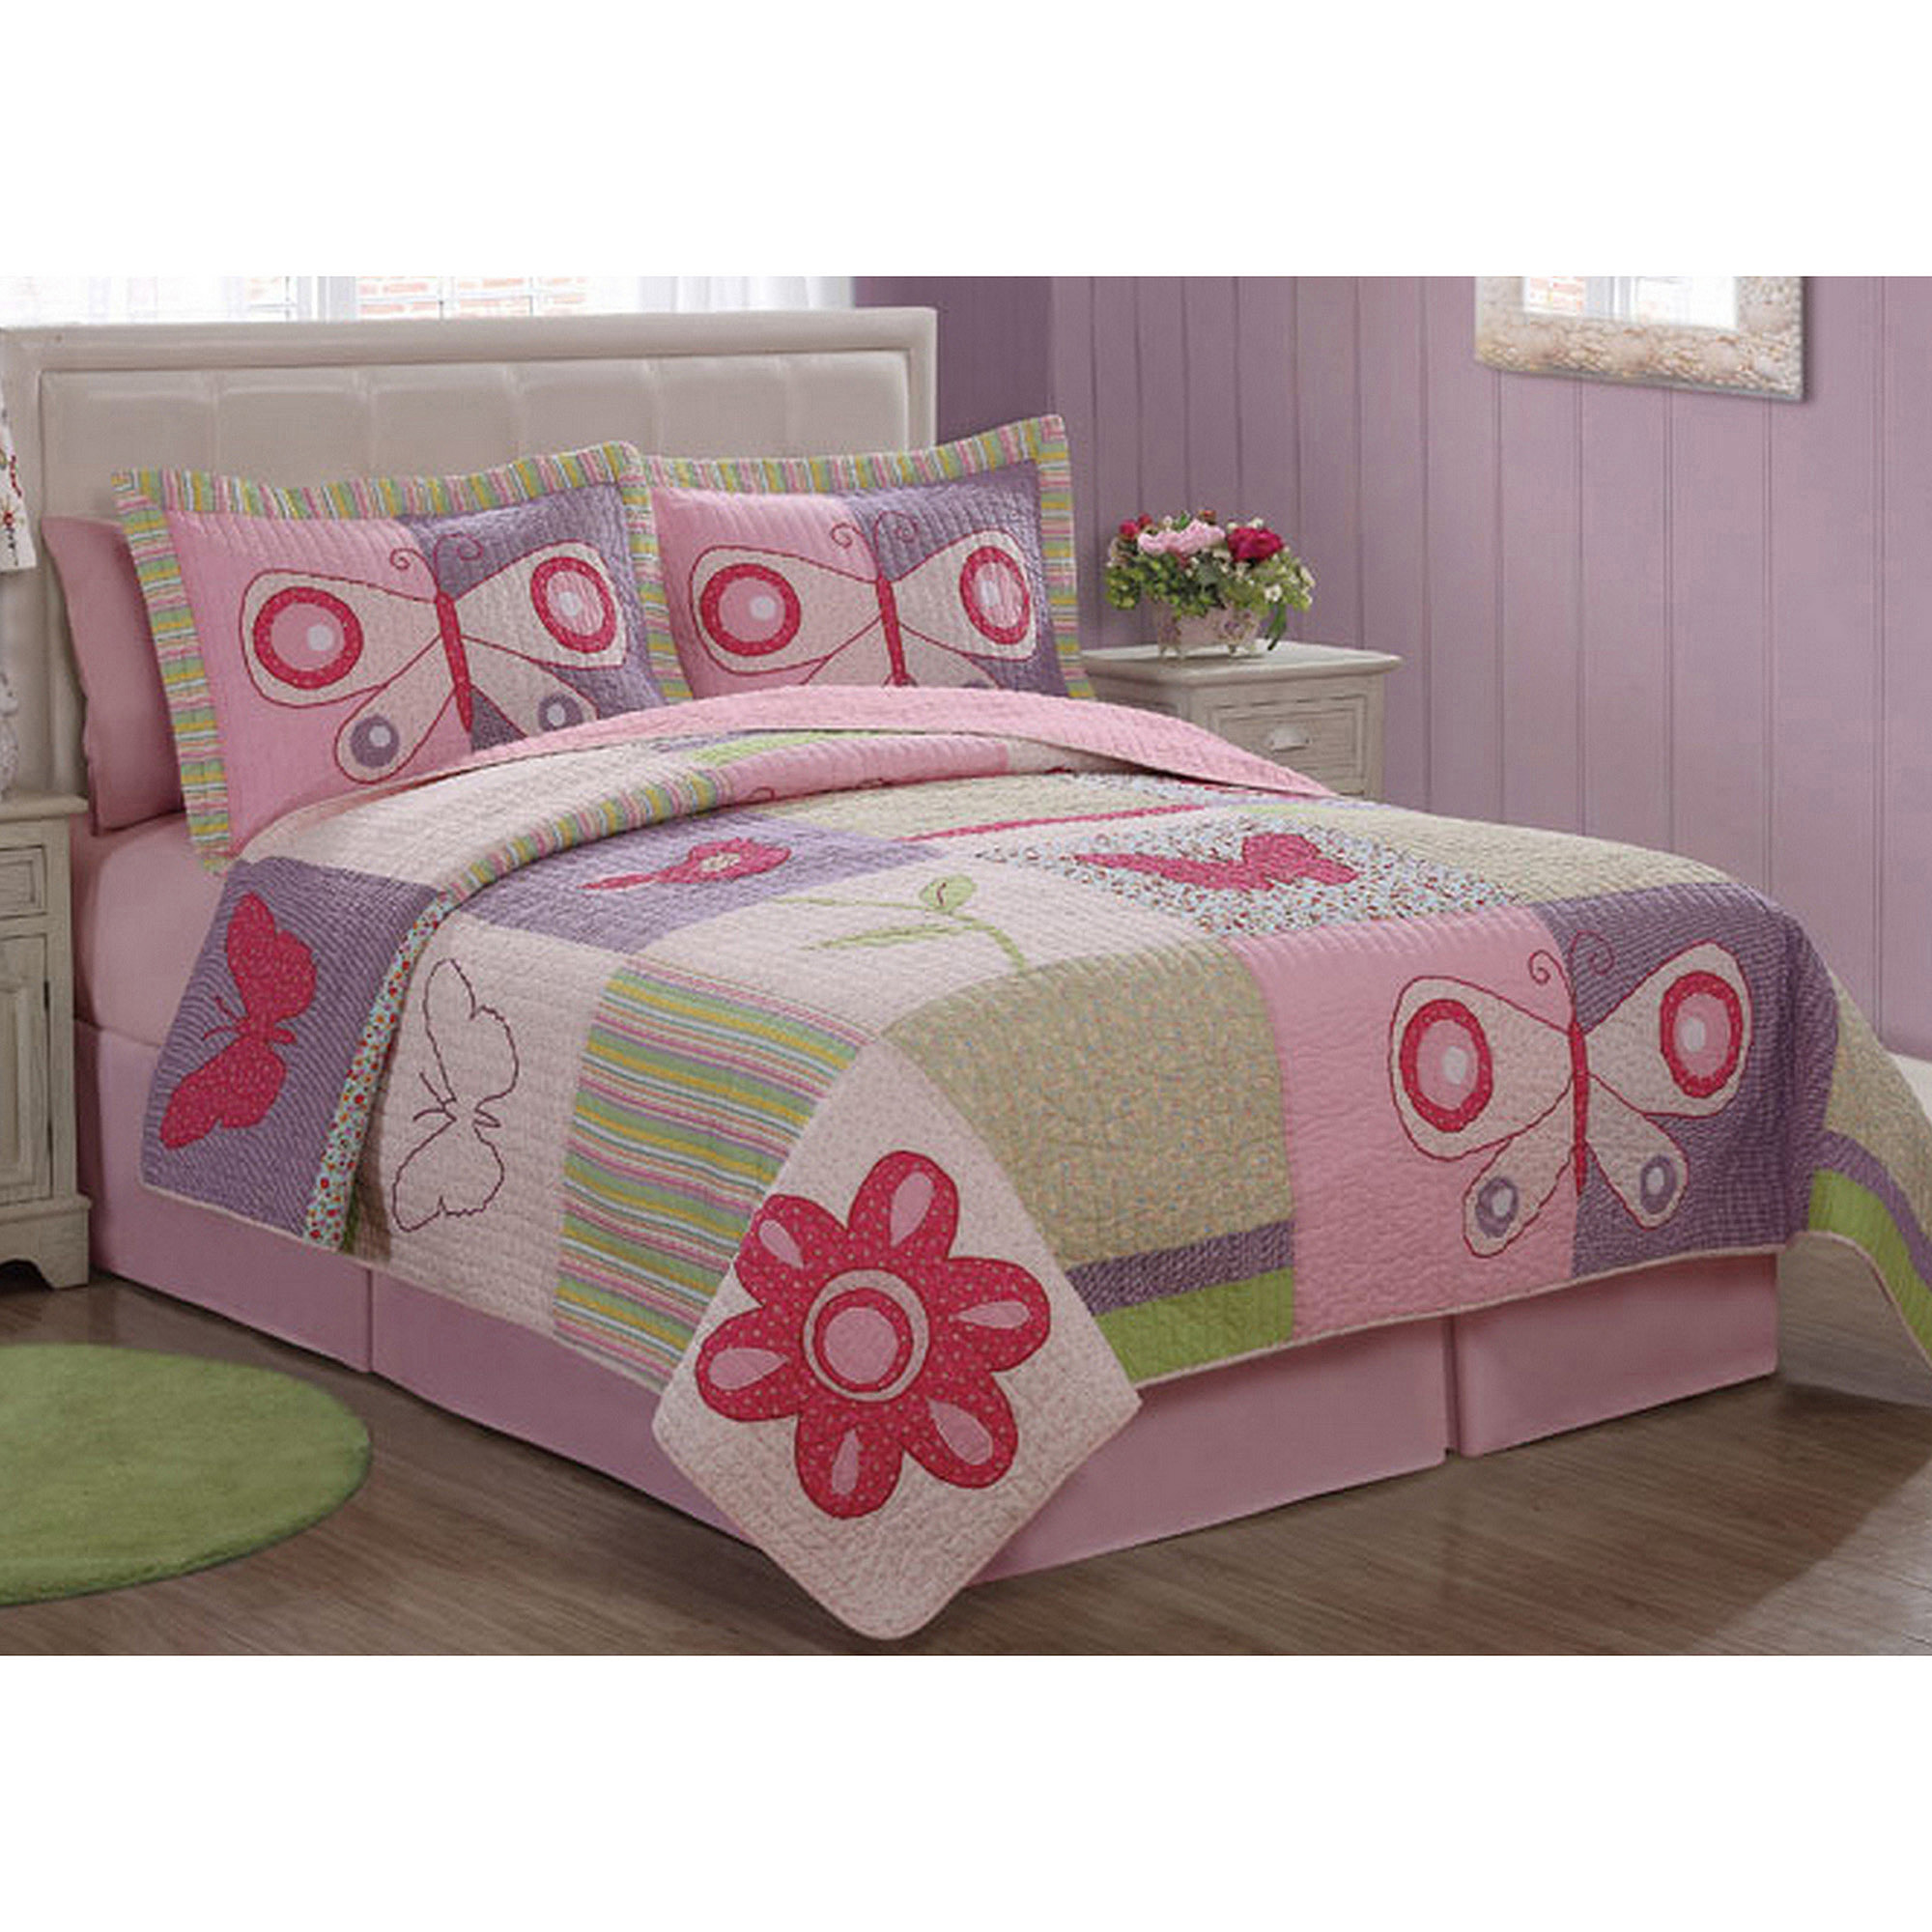 Pem America Inc Pink Butterfly Flower Bedding Quilt Set